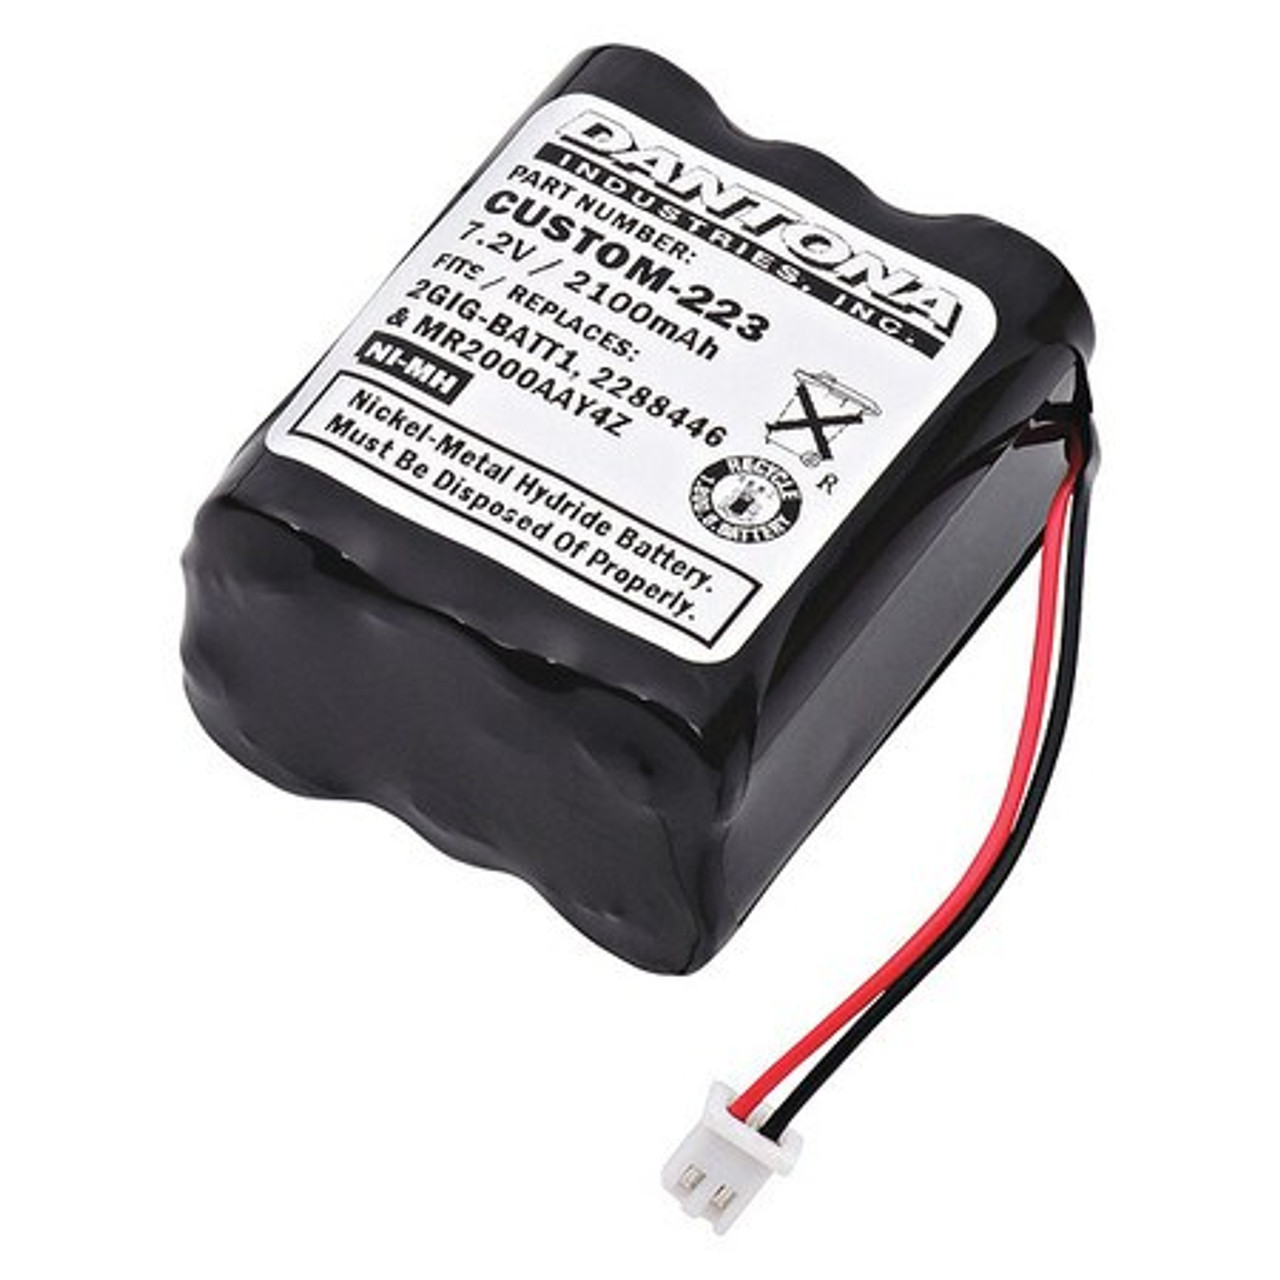 Fire Alarm Communicator Linear Corp Replacement Battery